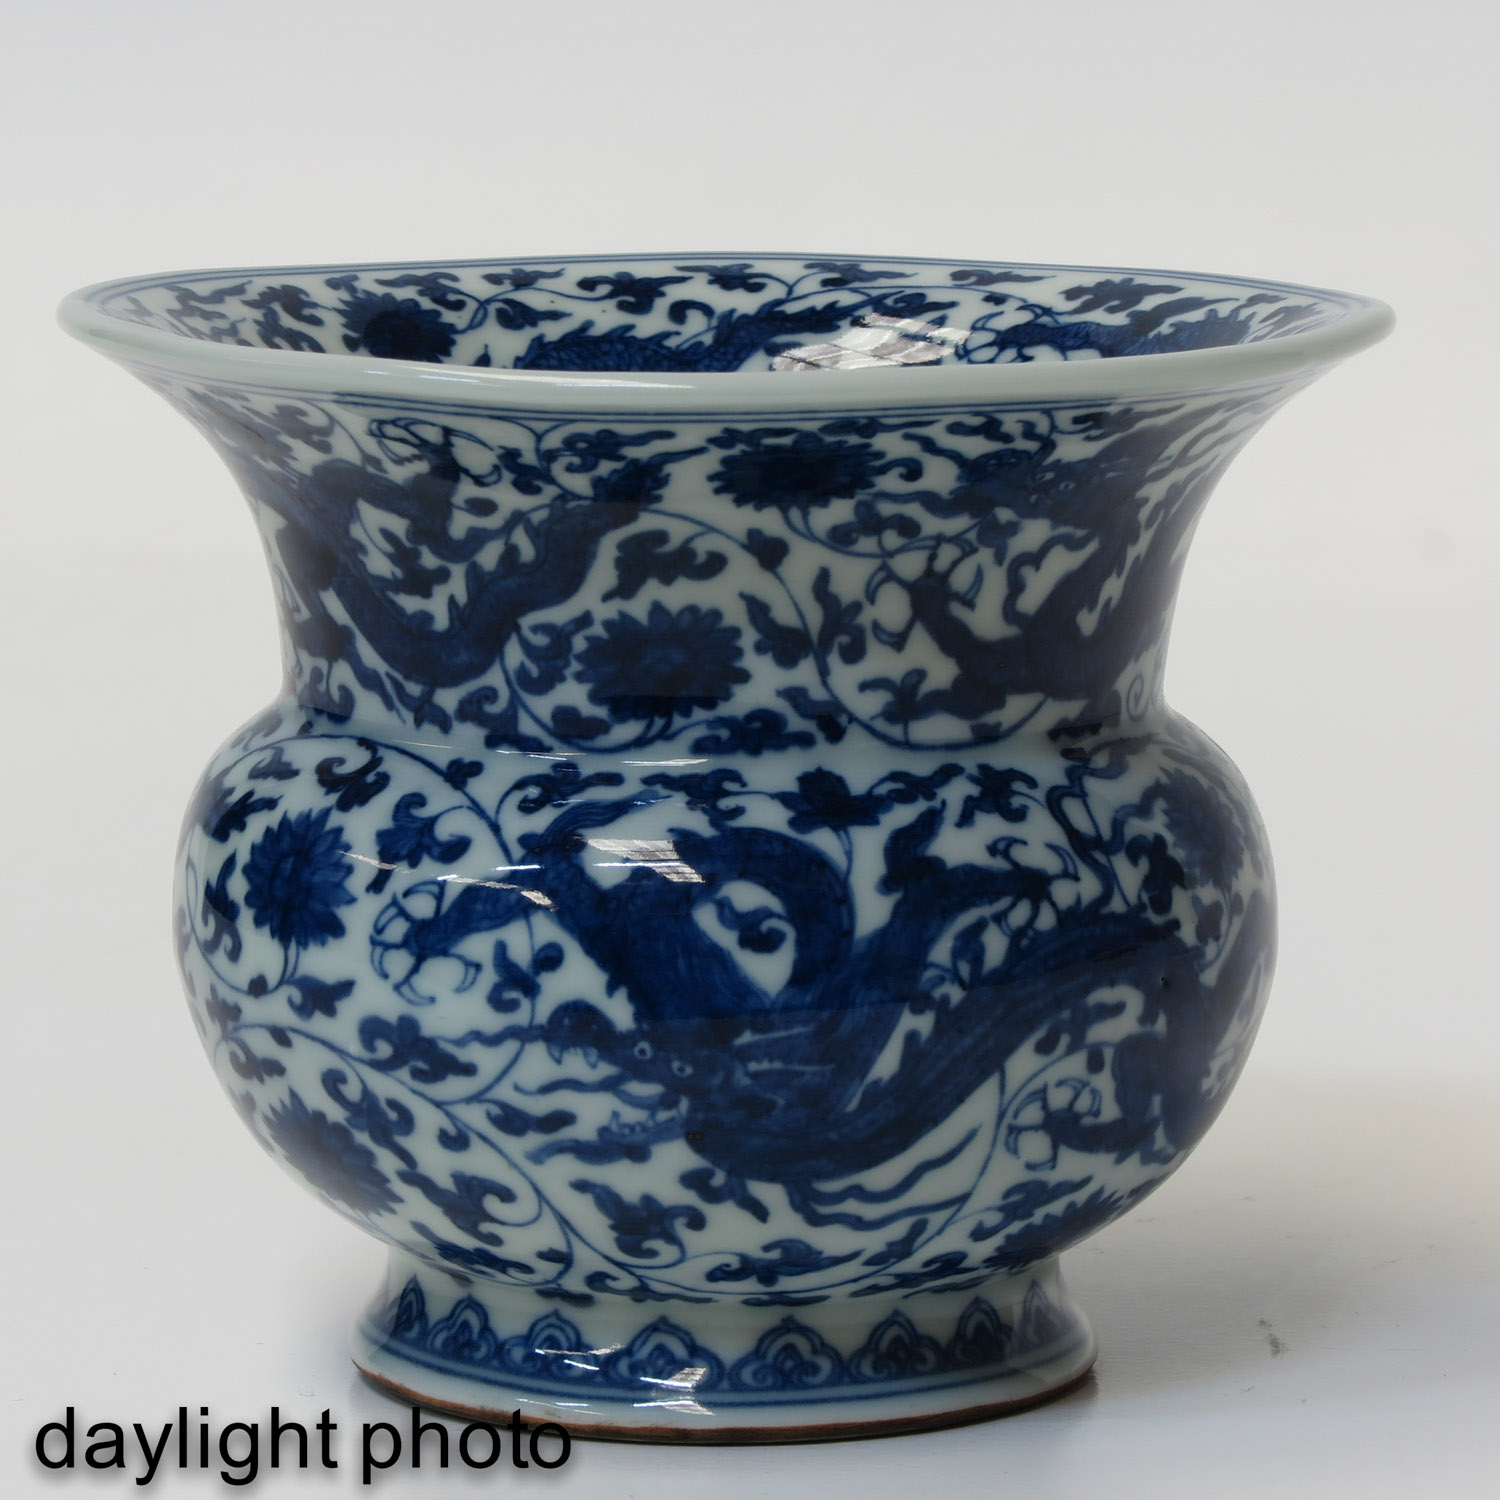 A Blue and White Vase - Image 7 of 9